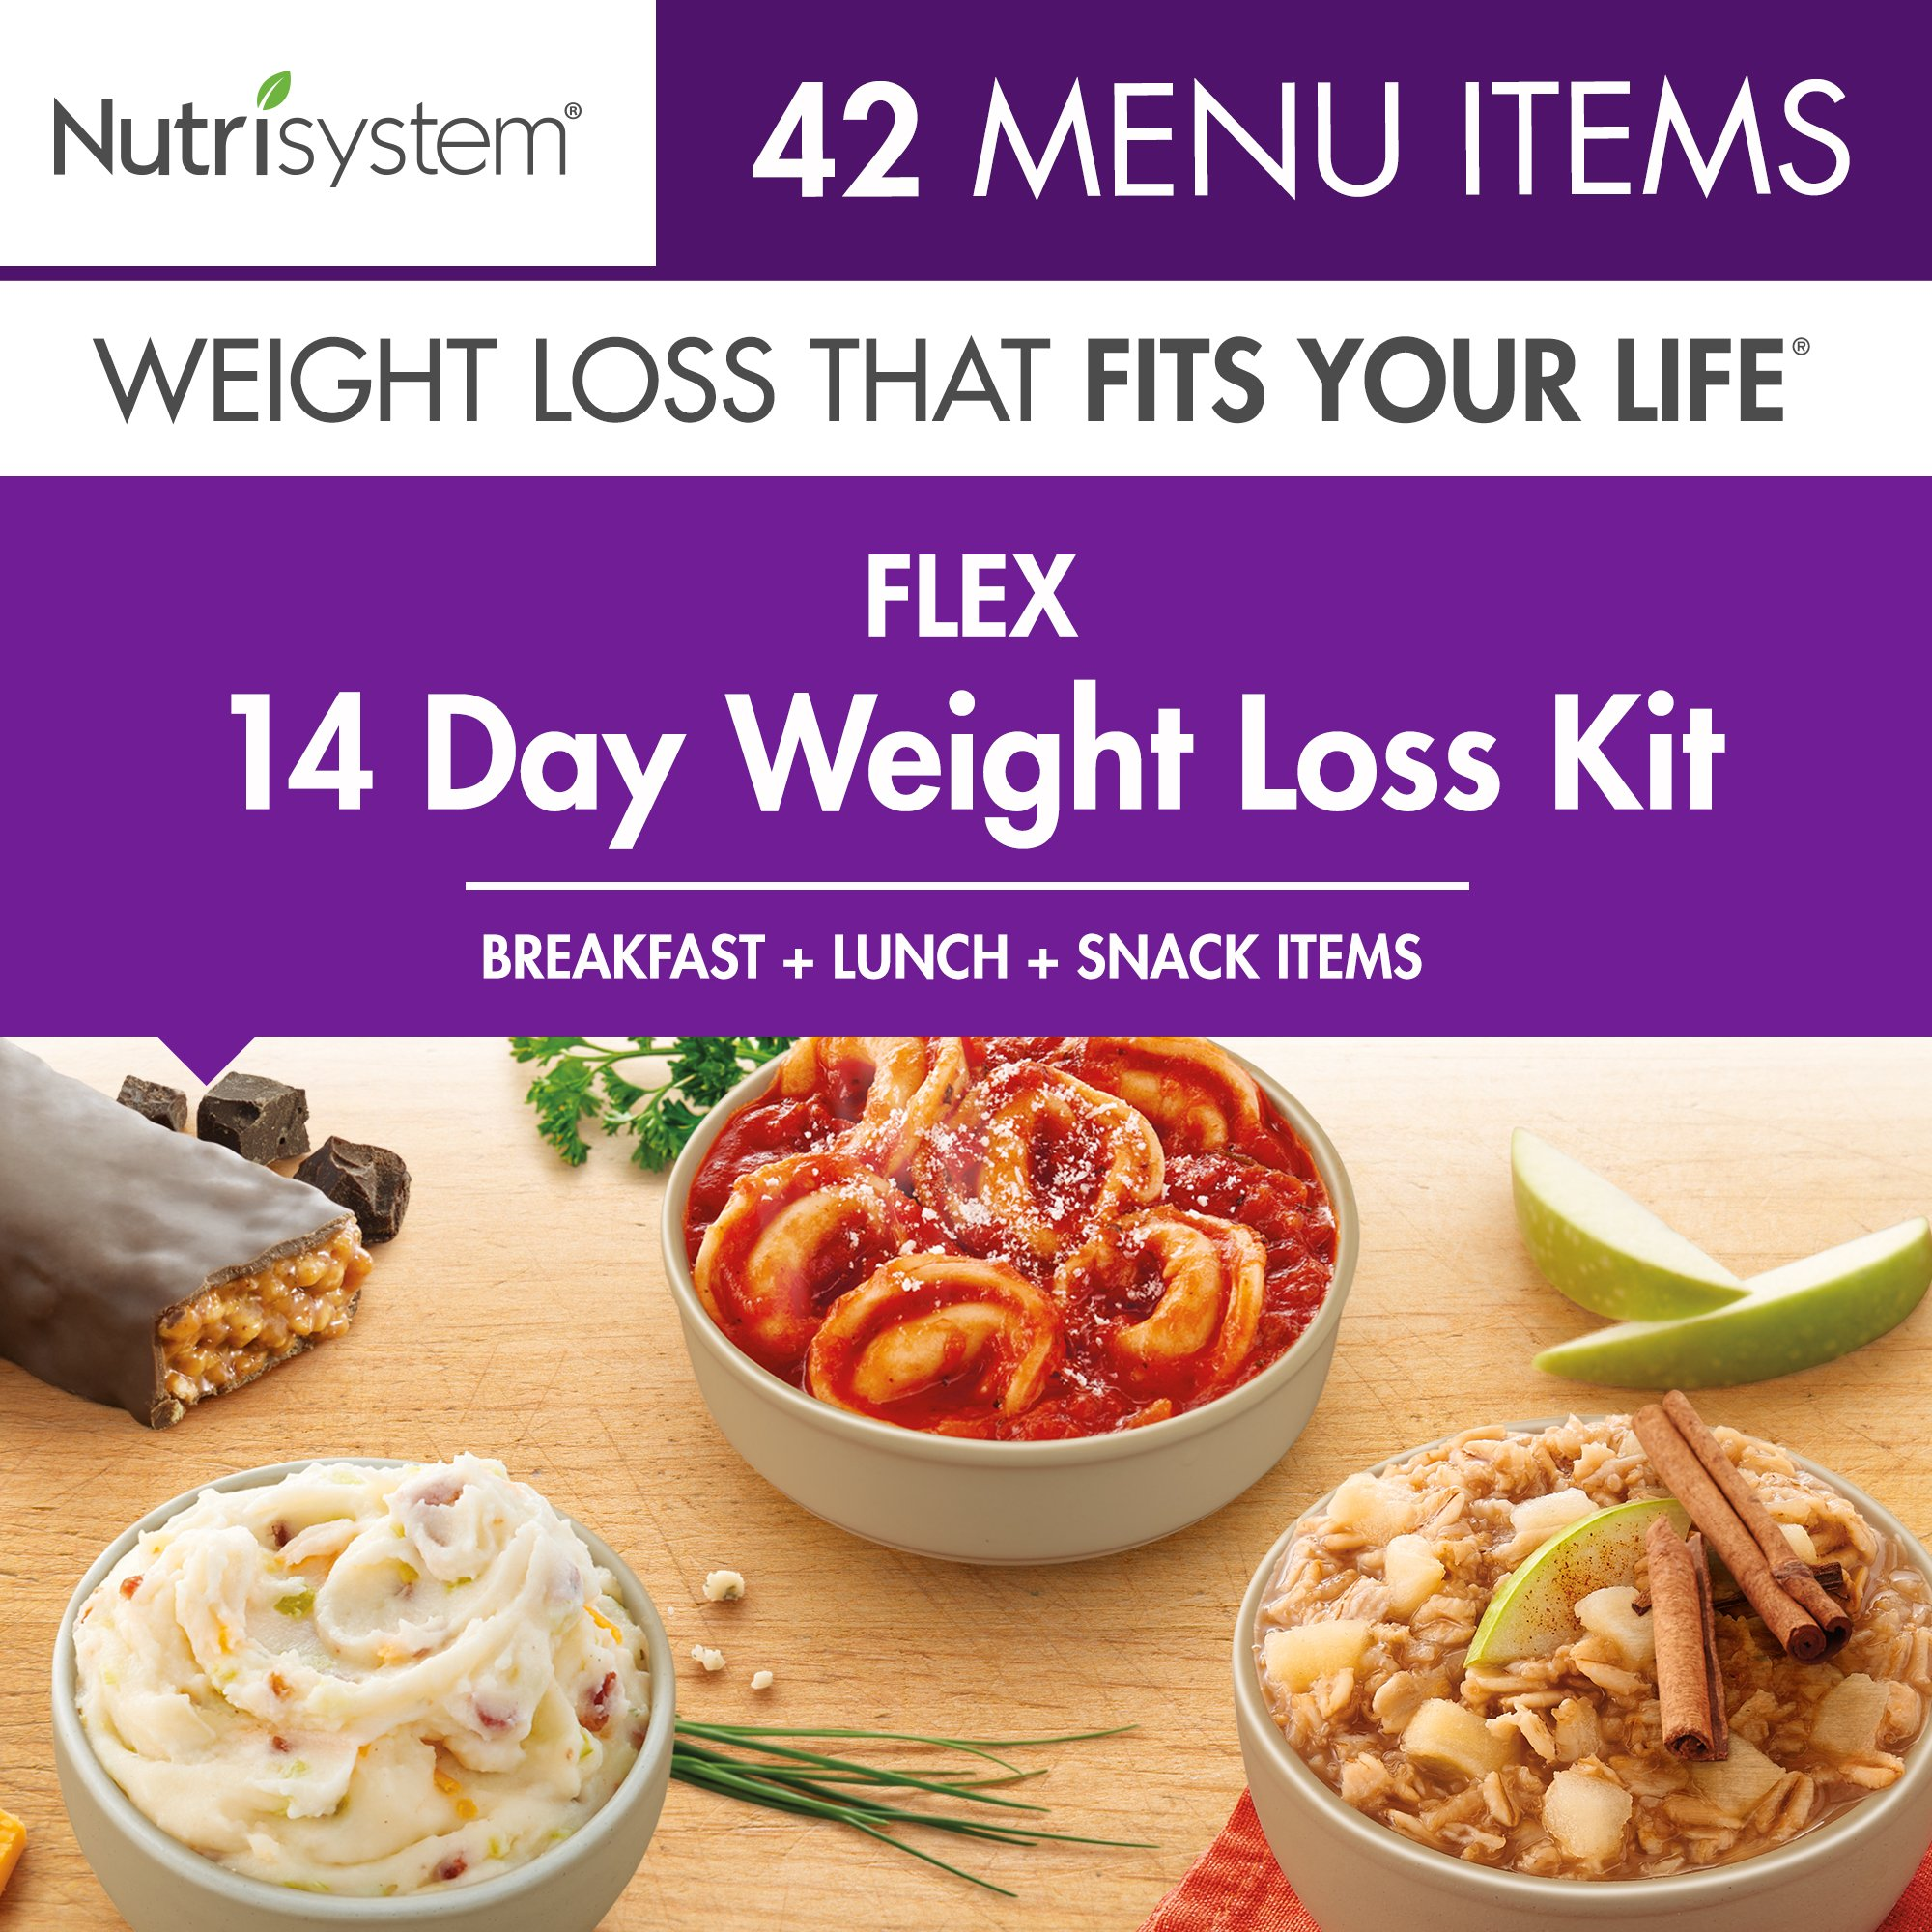 Nutrisystem® Flex 14 Day Weight Loss Kit, Includes Breakfasts, Lunches & Snacks for 14 Days, Perfectly Portioned for Weight Loss® by Nutrisystem